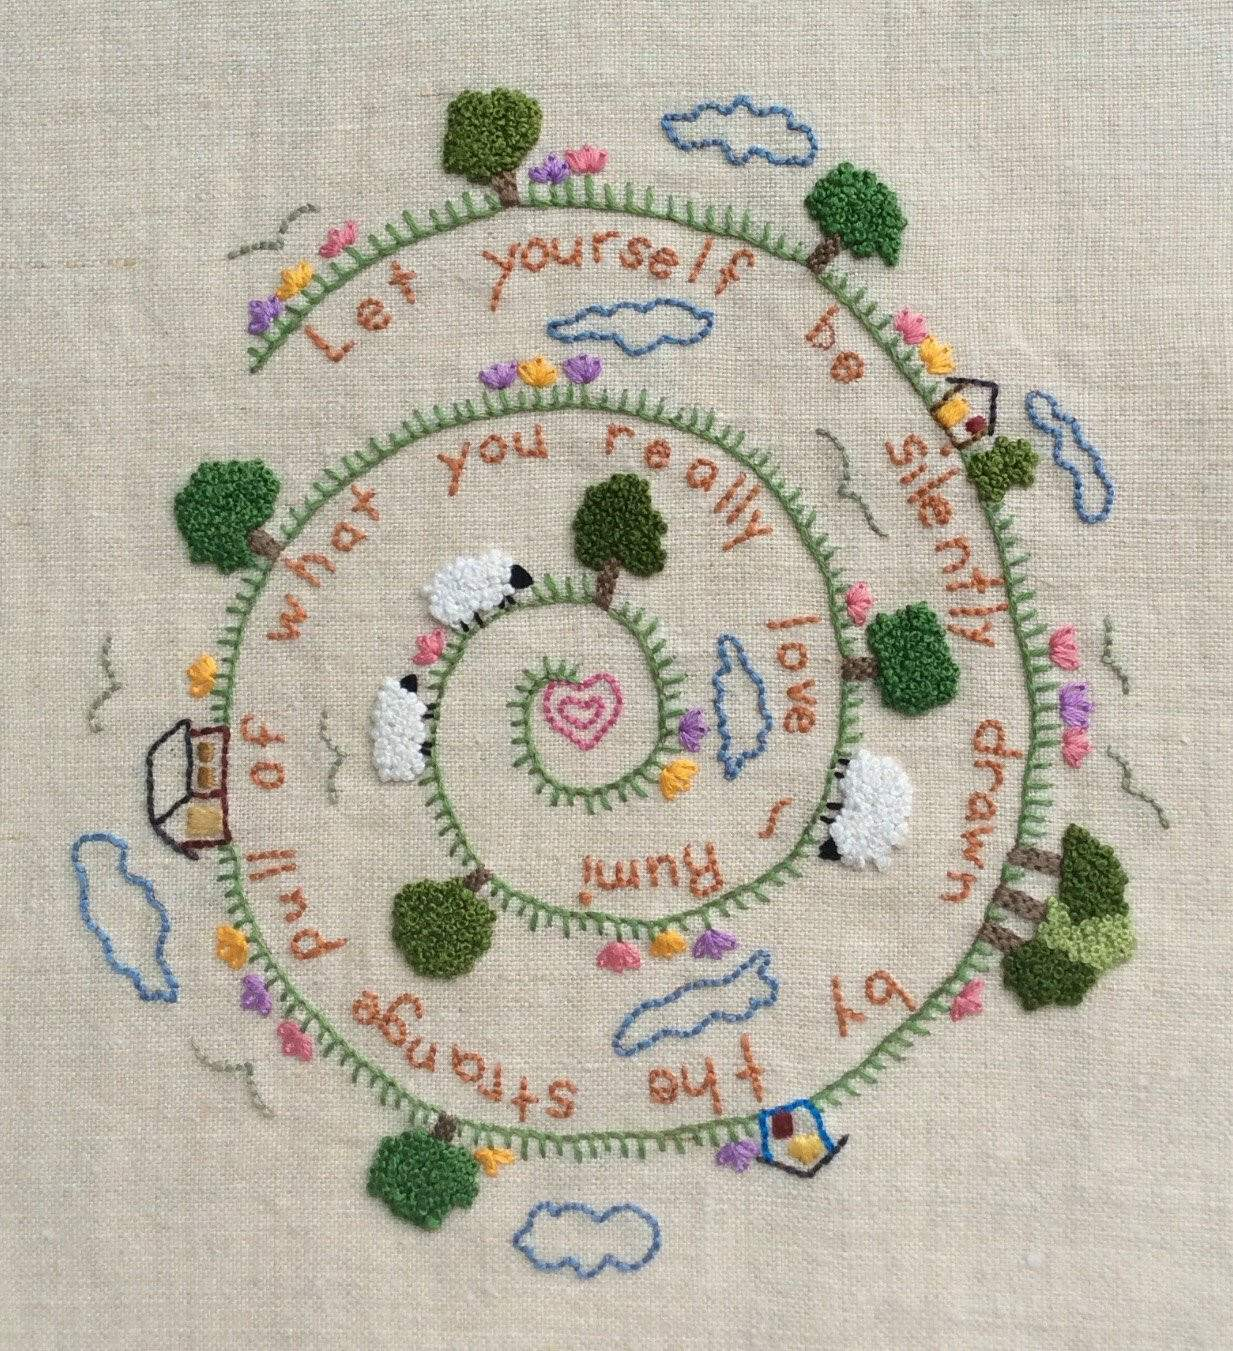 How To Make Hand Embroidery Patterns Lovely Hand Embroidery Pattern Pdf Instant Download Rumi Diy Hand